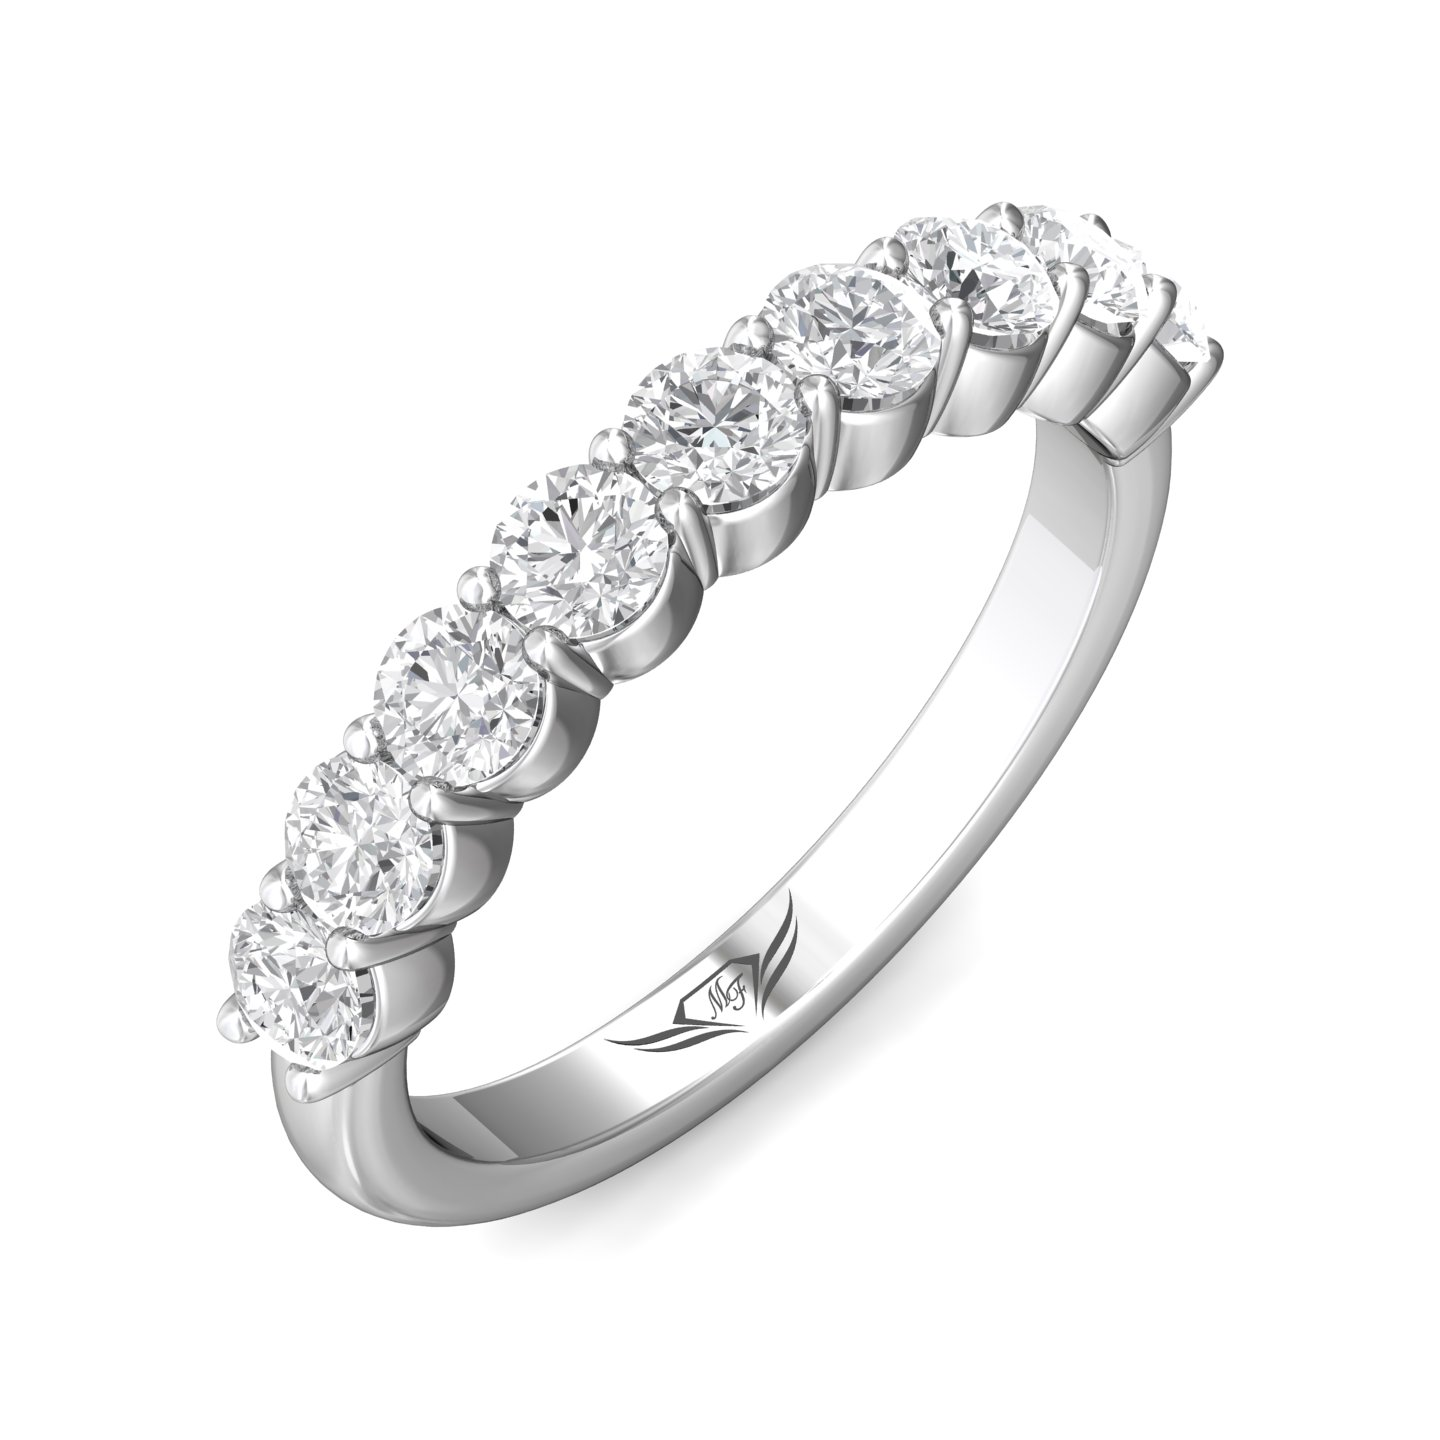 Rings - 14K White Gold FlyerFit Shared Prong Wedding Band - image #5